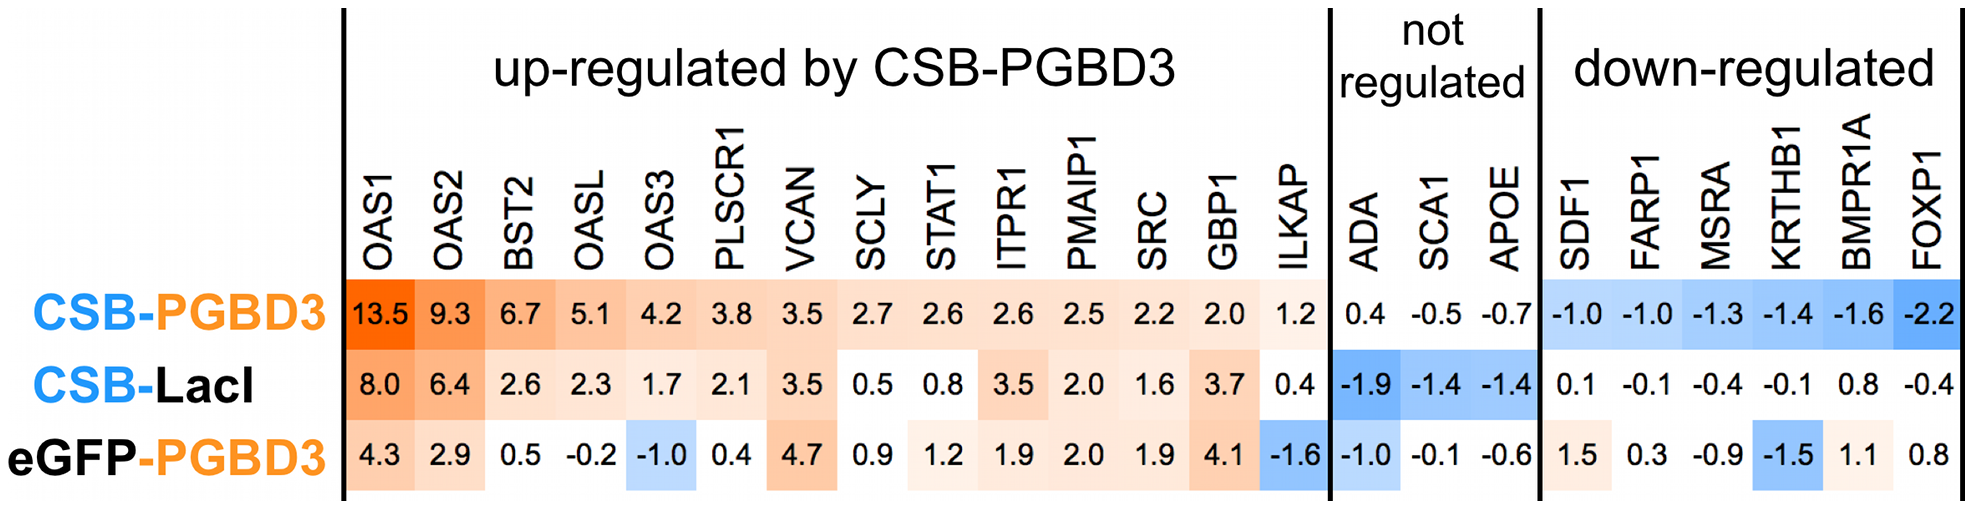 CSB-LacI and eGFP-PGBD3 induce partial up-regulation of genes regulated by CSB-PGBD3.